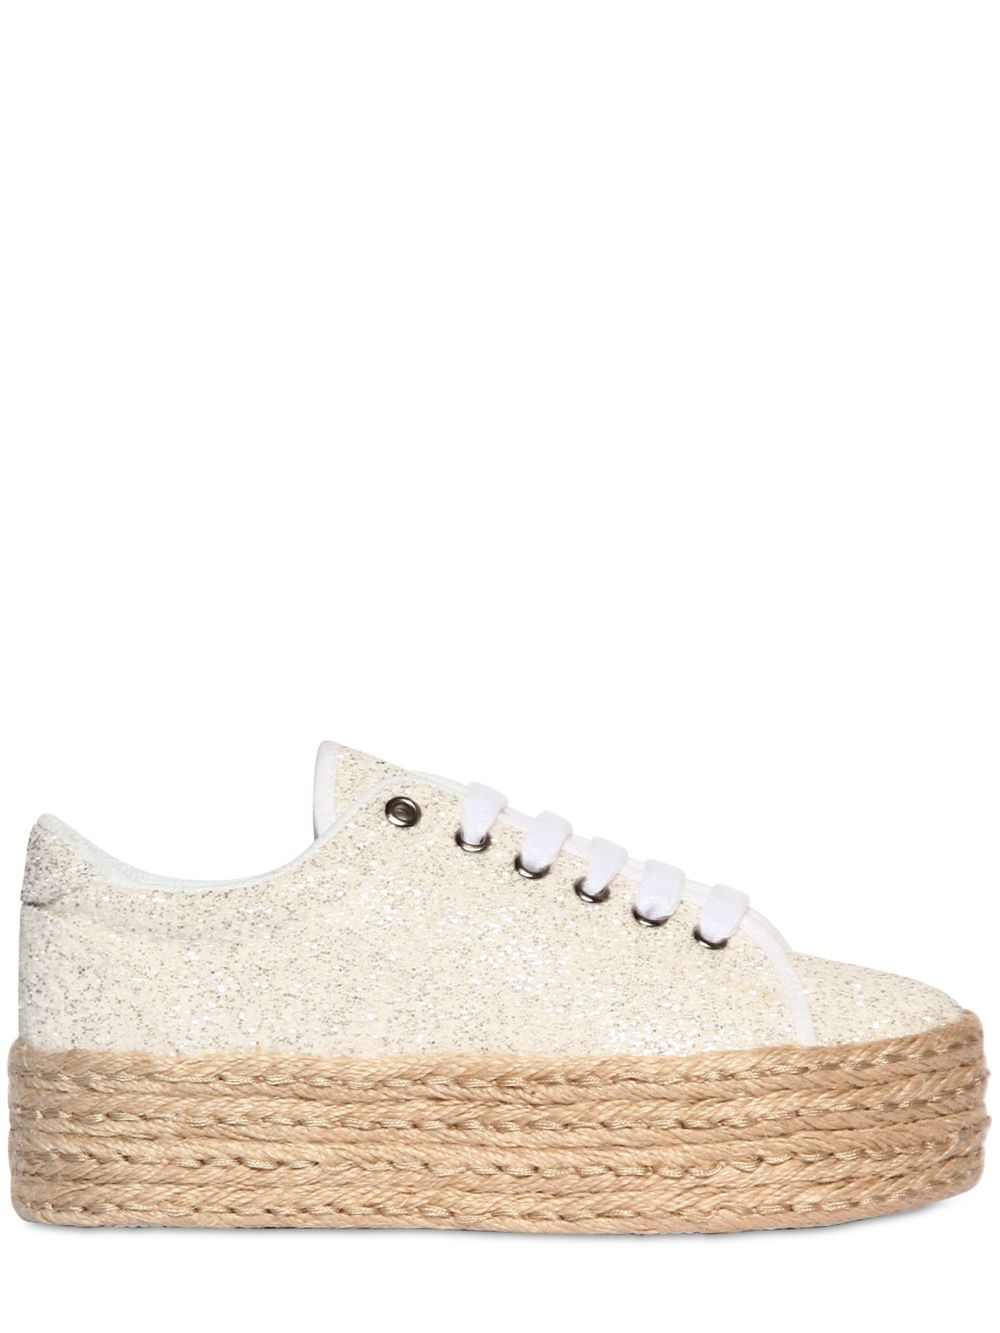 4722d21f4943e Gallery. Previously sold at  LUISA VIA ROMA · Women s Platform Trainers ...